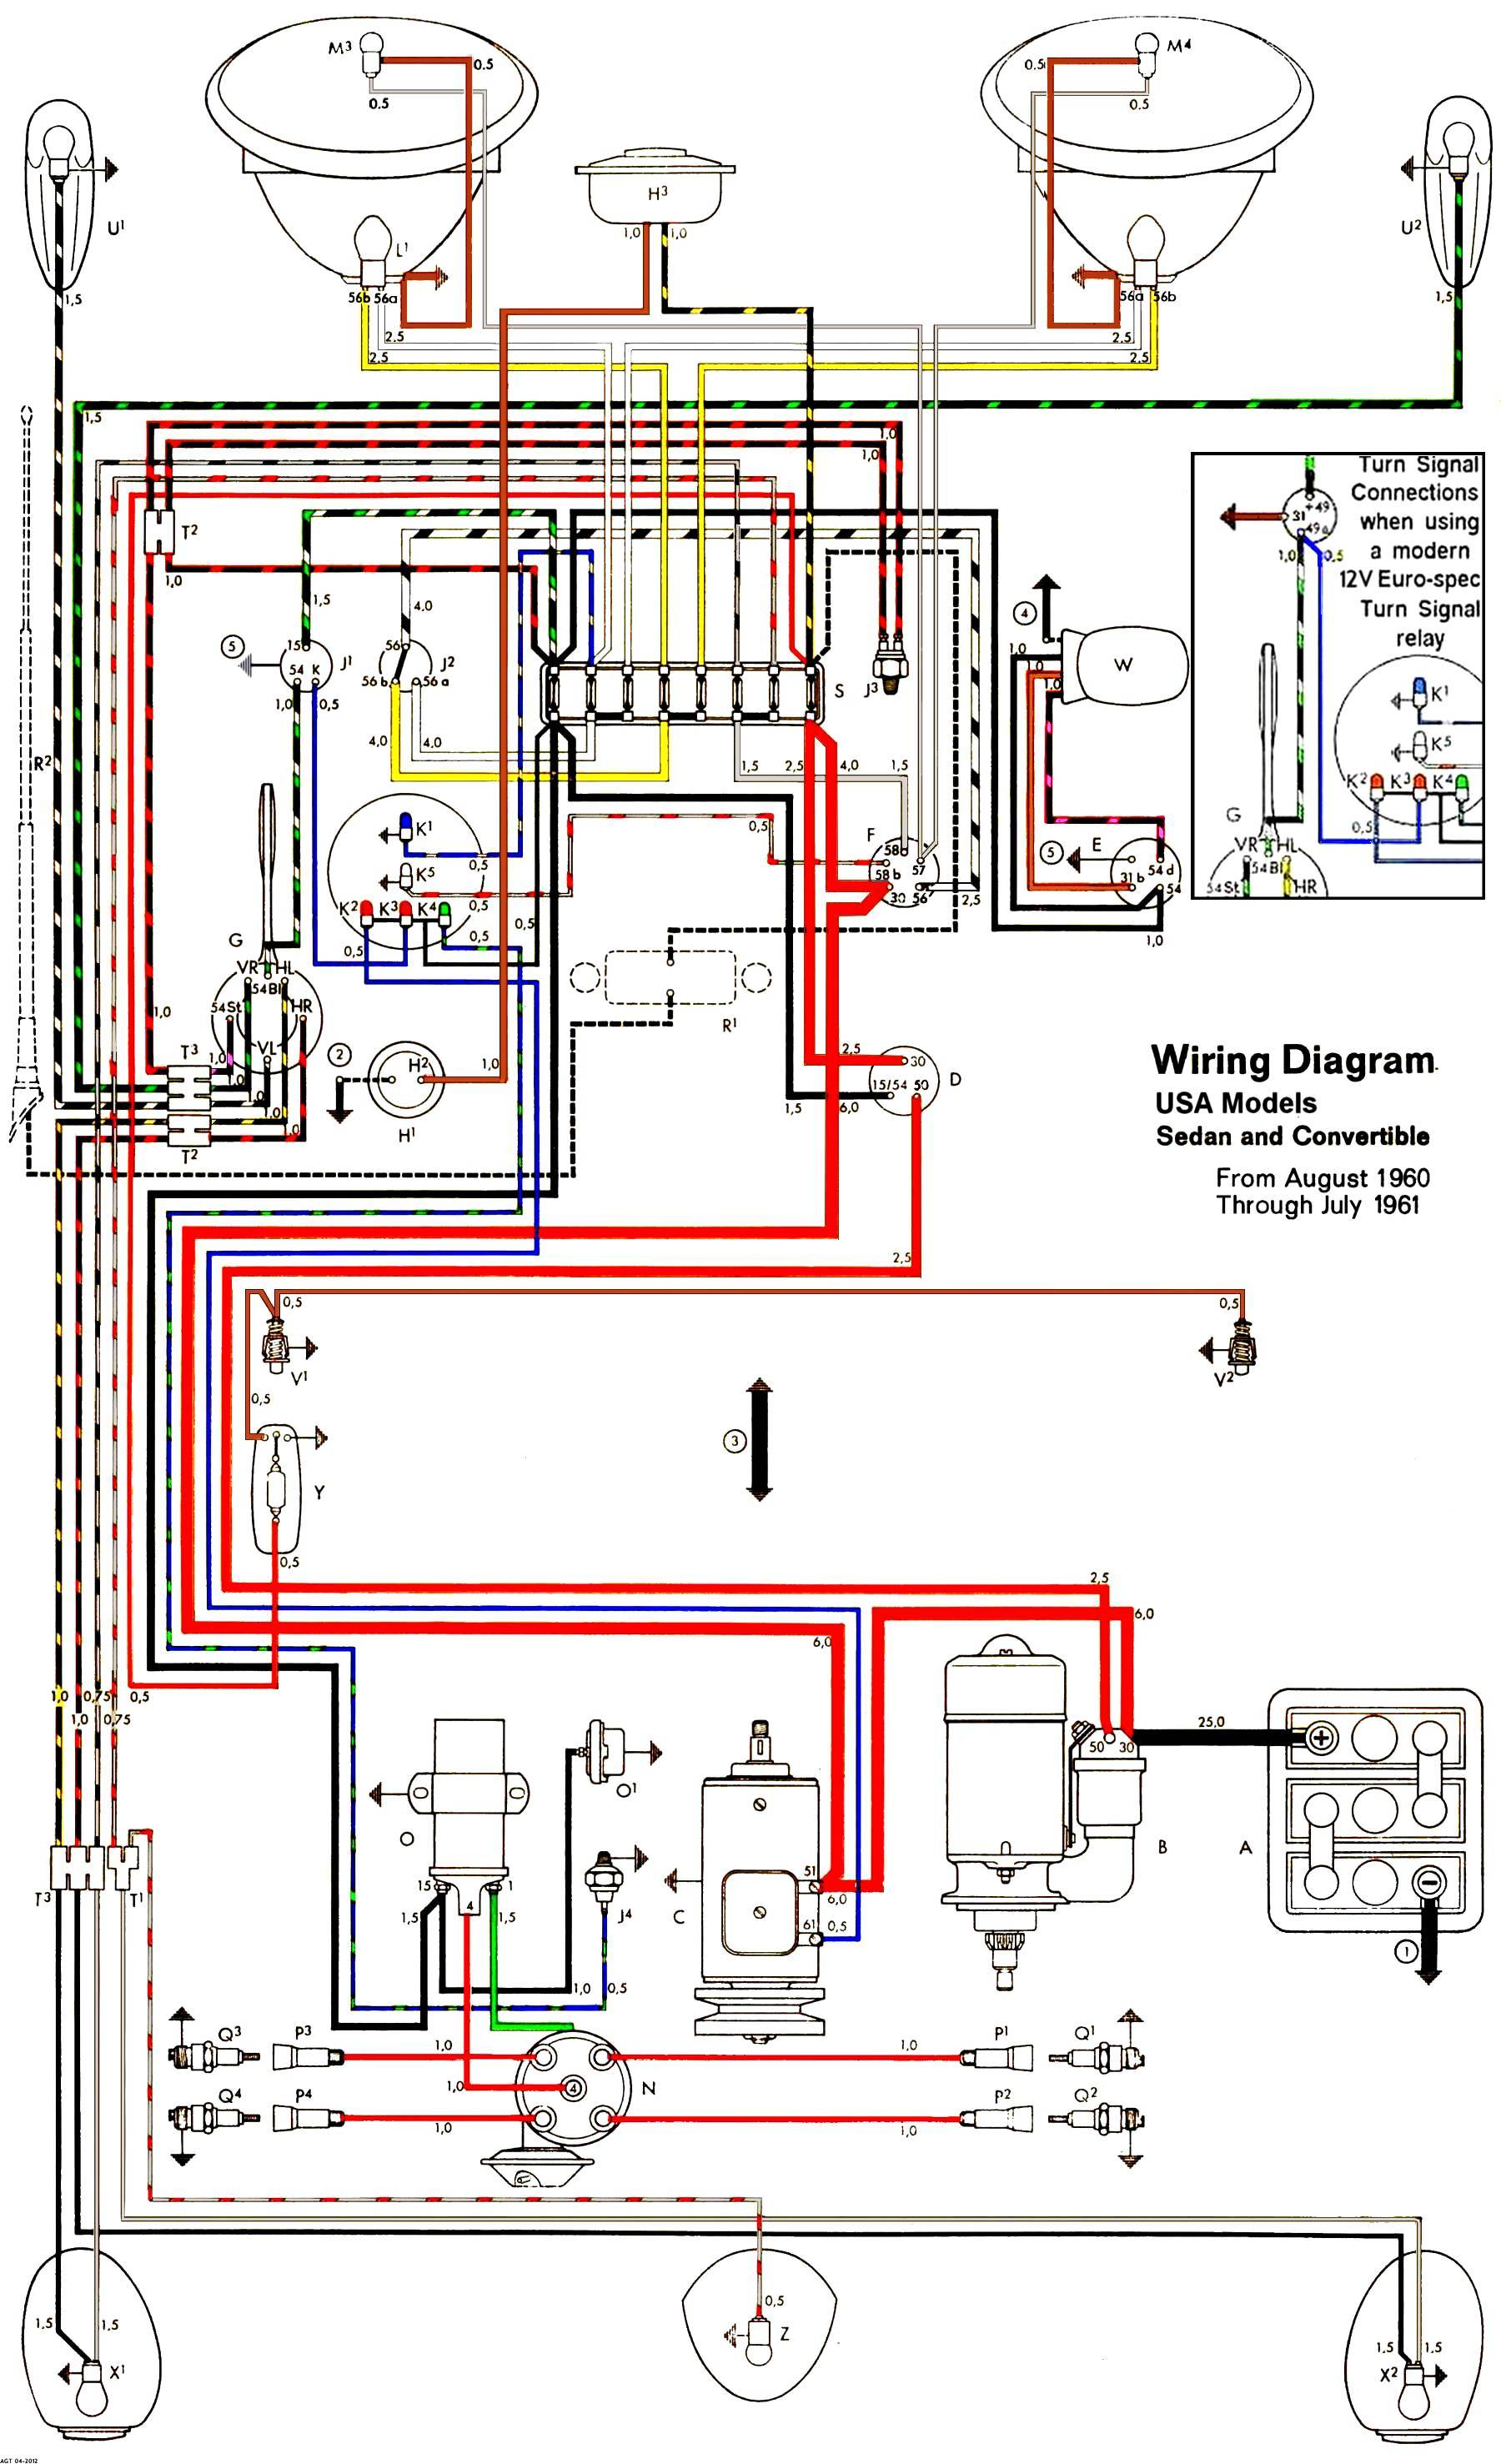 1961USA T1 thesamba com type 1 wiring diagrams Simple Electrical Wiring Diagrams at cos-gaming.co